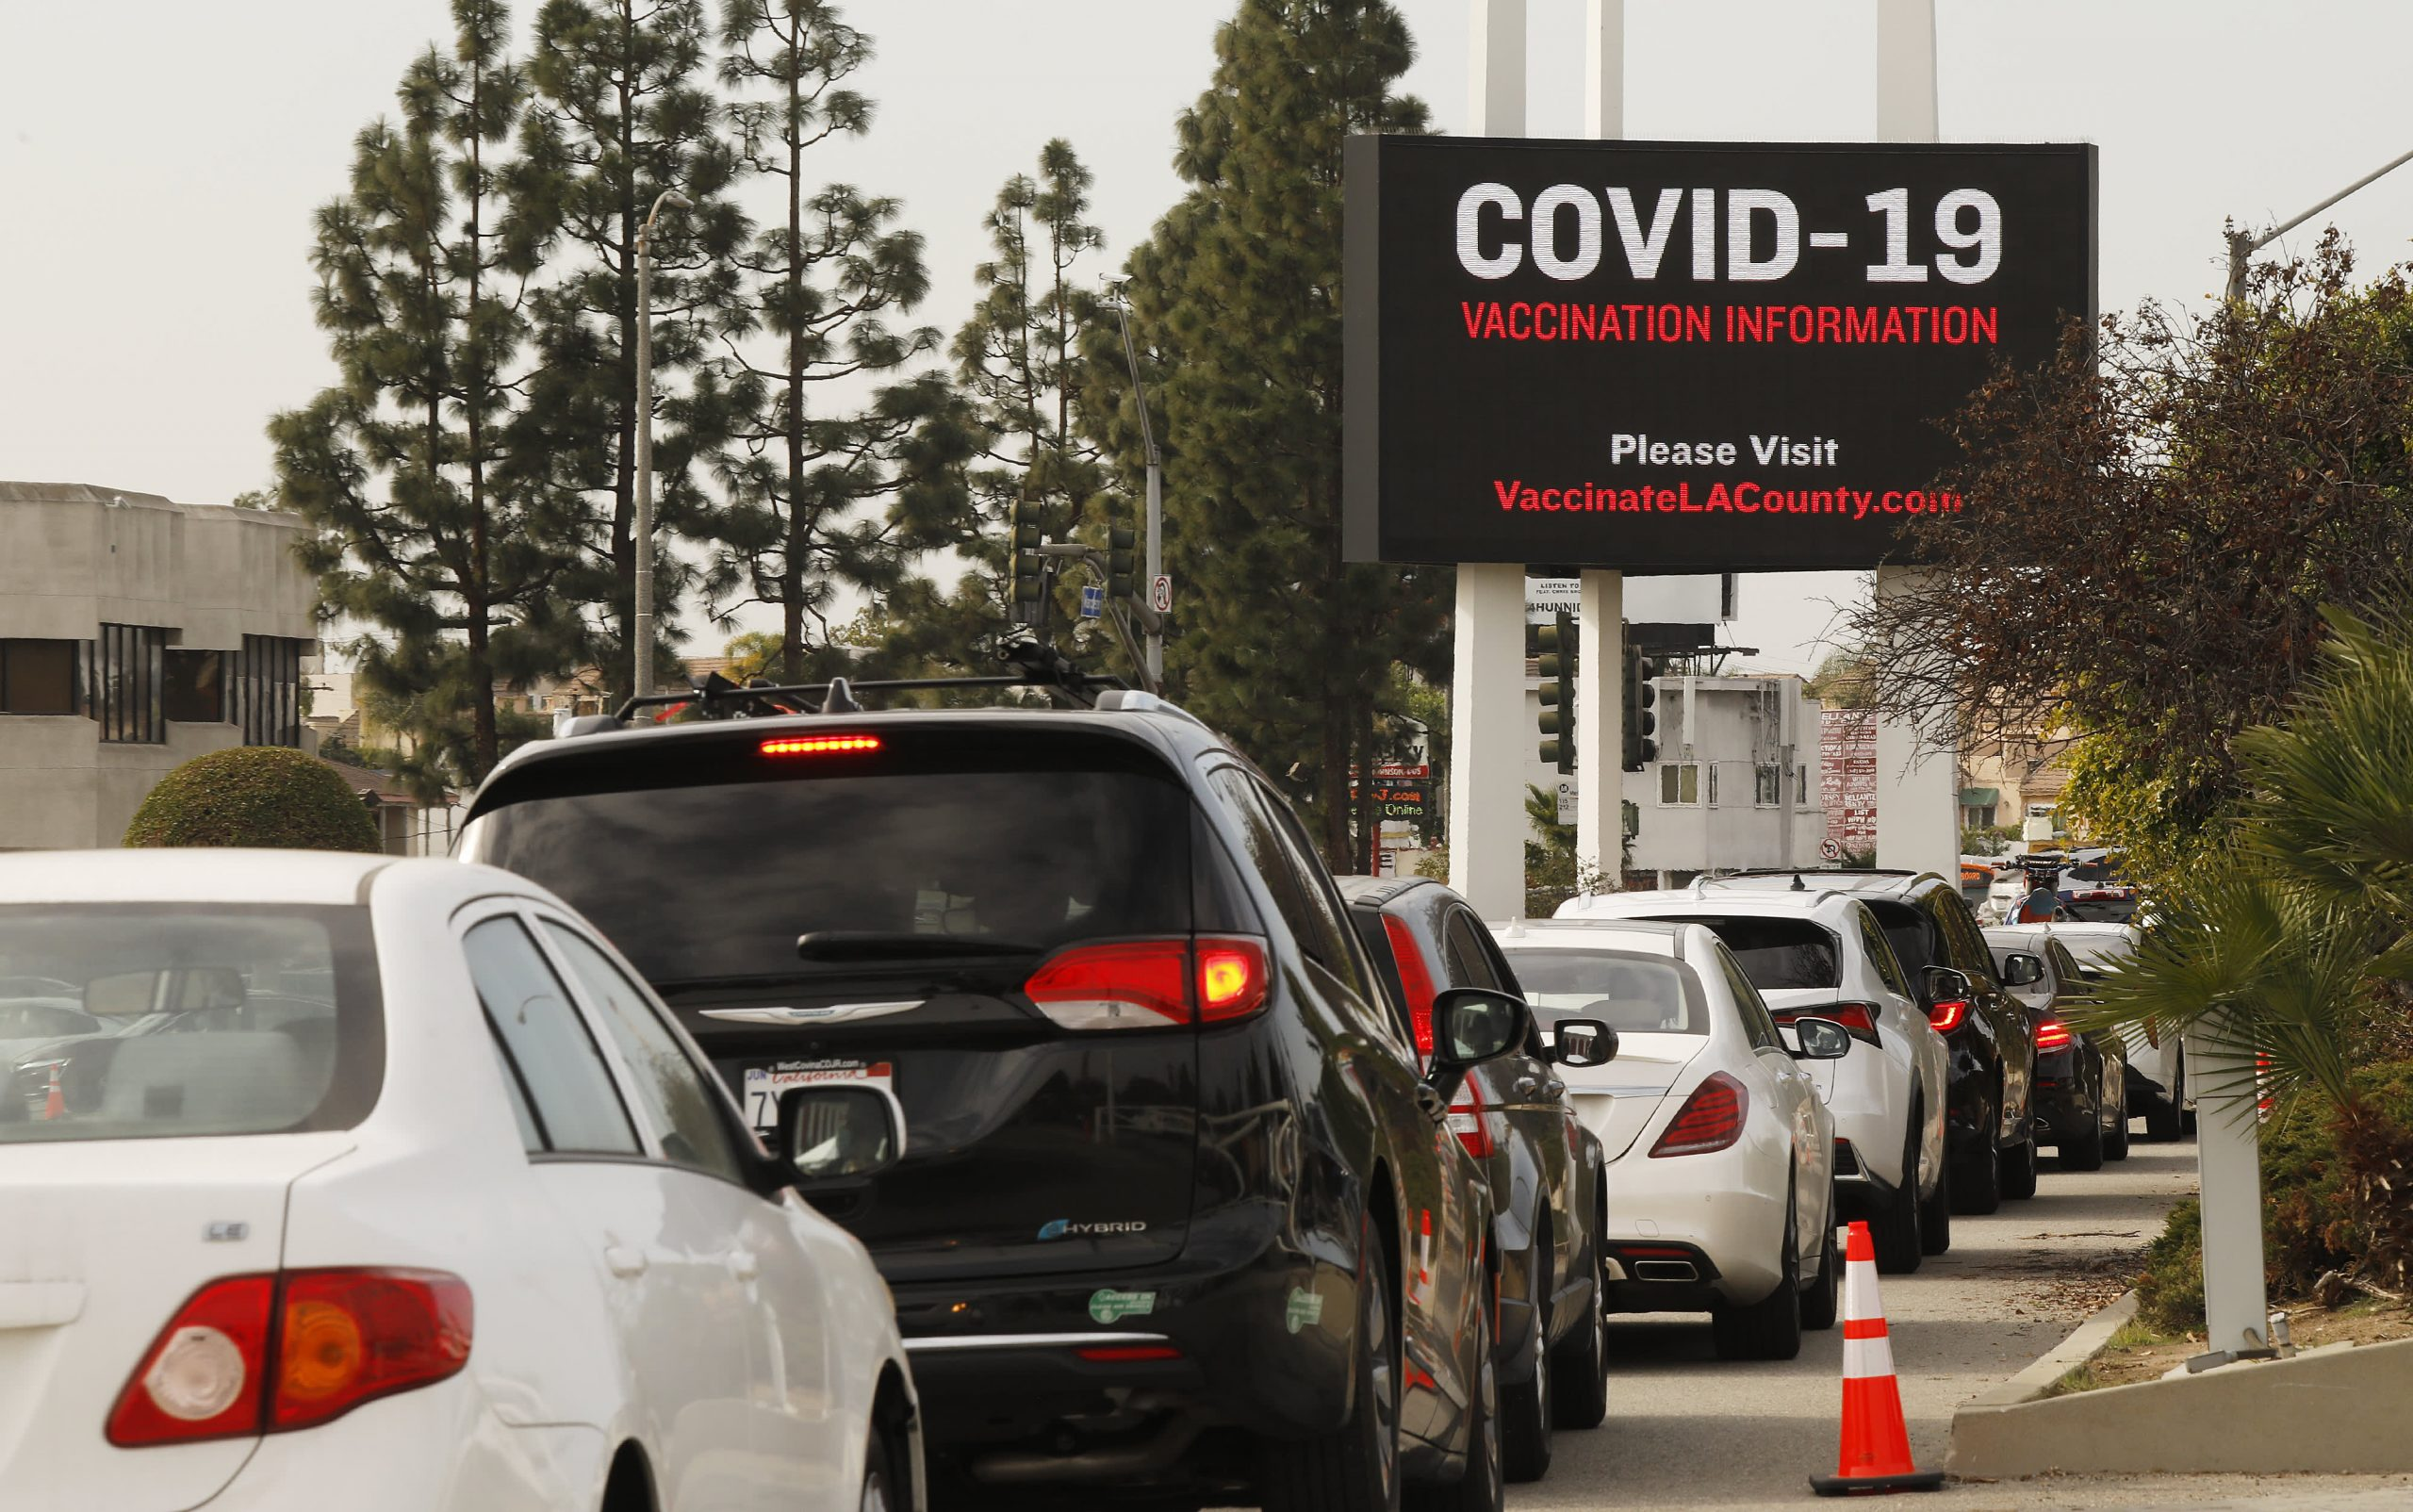 Biden administration to invest over $1.6 billion to expand Covid testing, sequencing